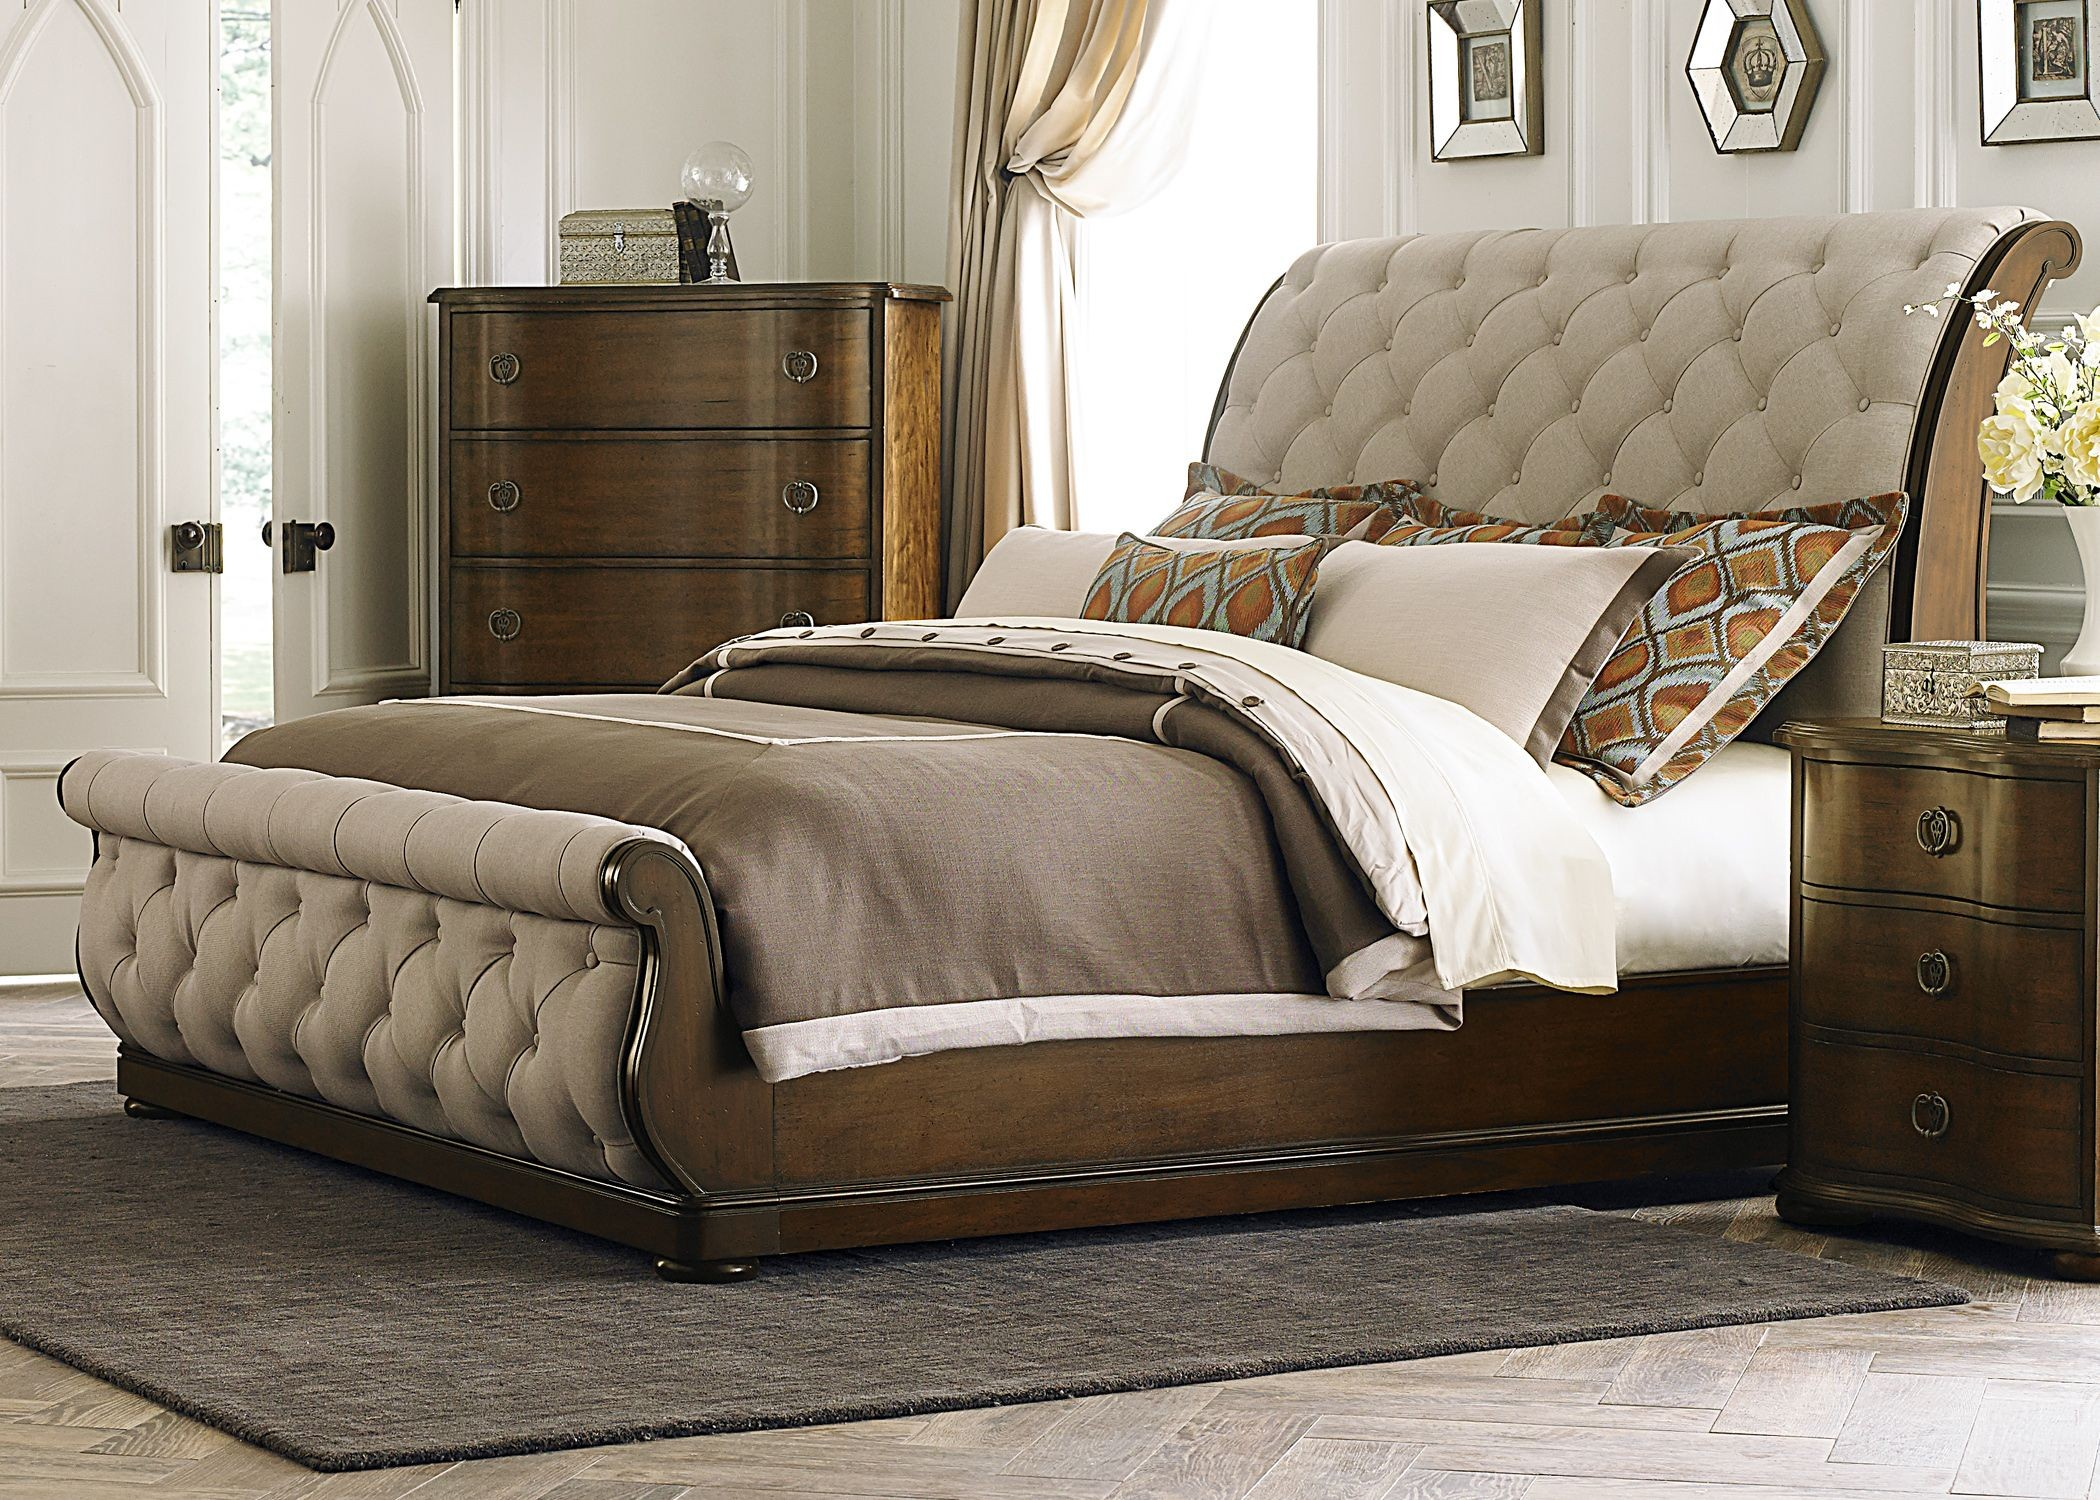 Cotswold king upholstered sleigh bed from liberty 545 br for Furniture and beds